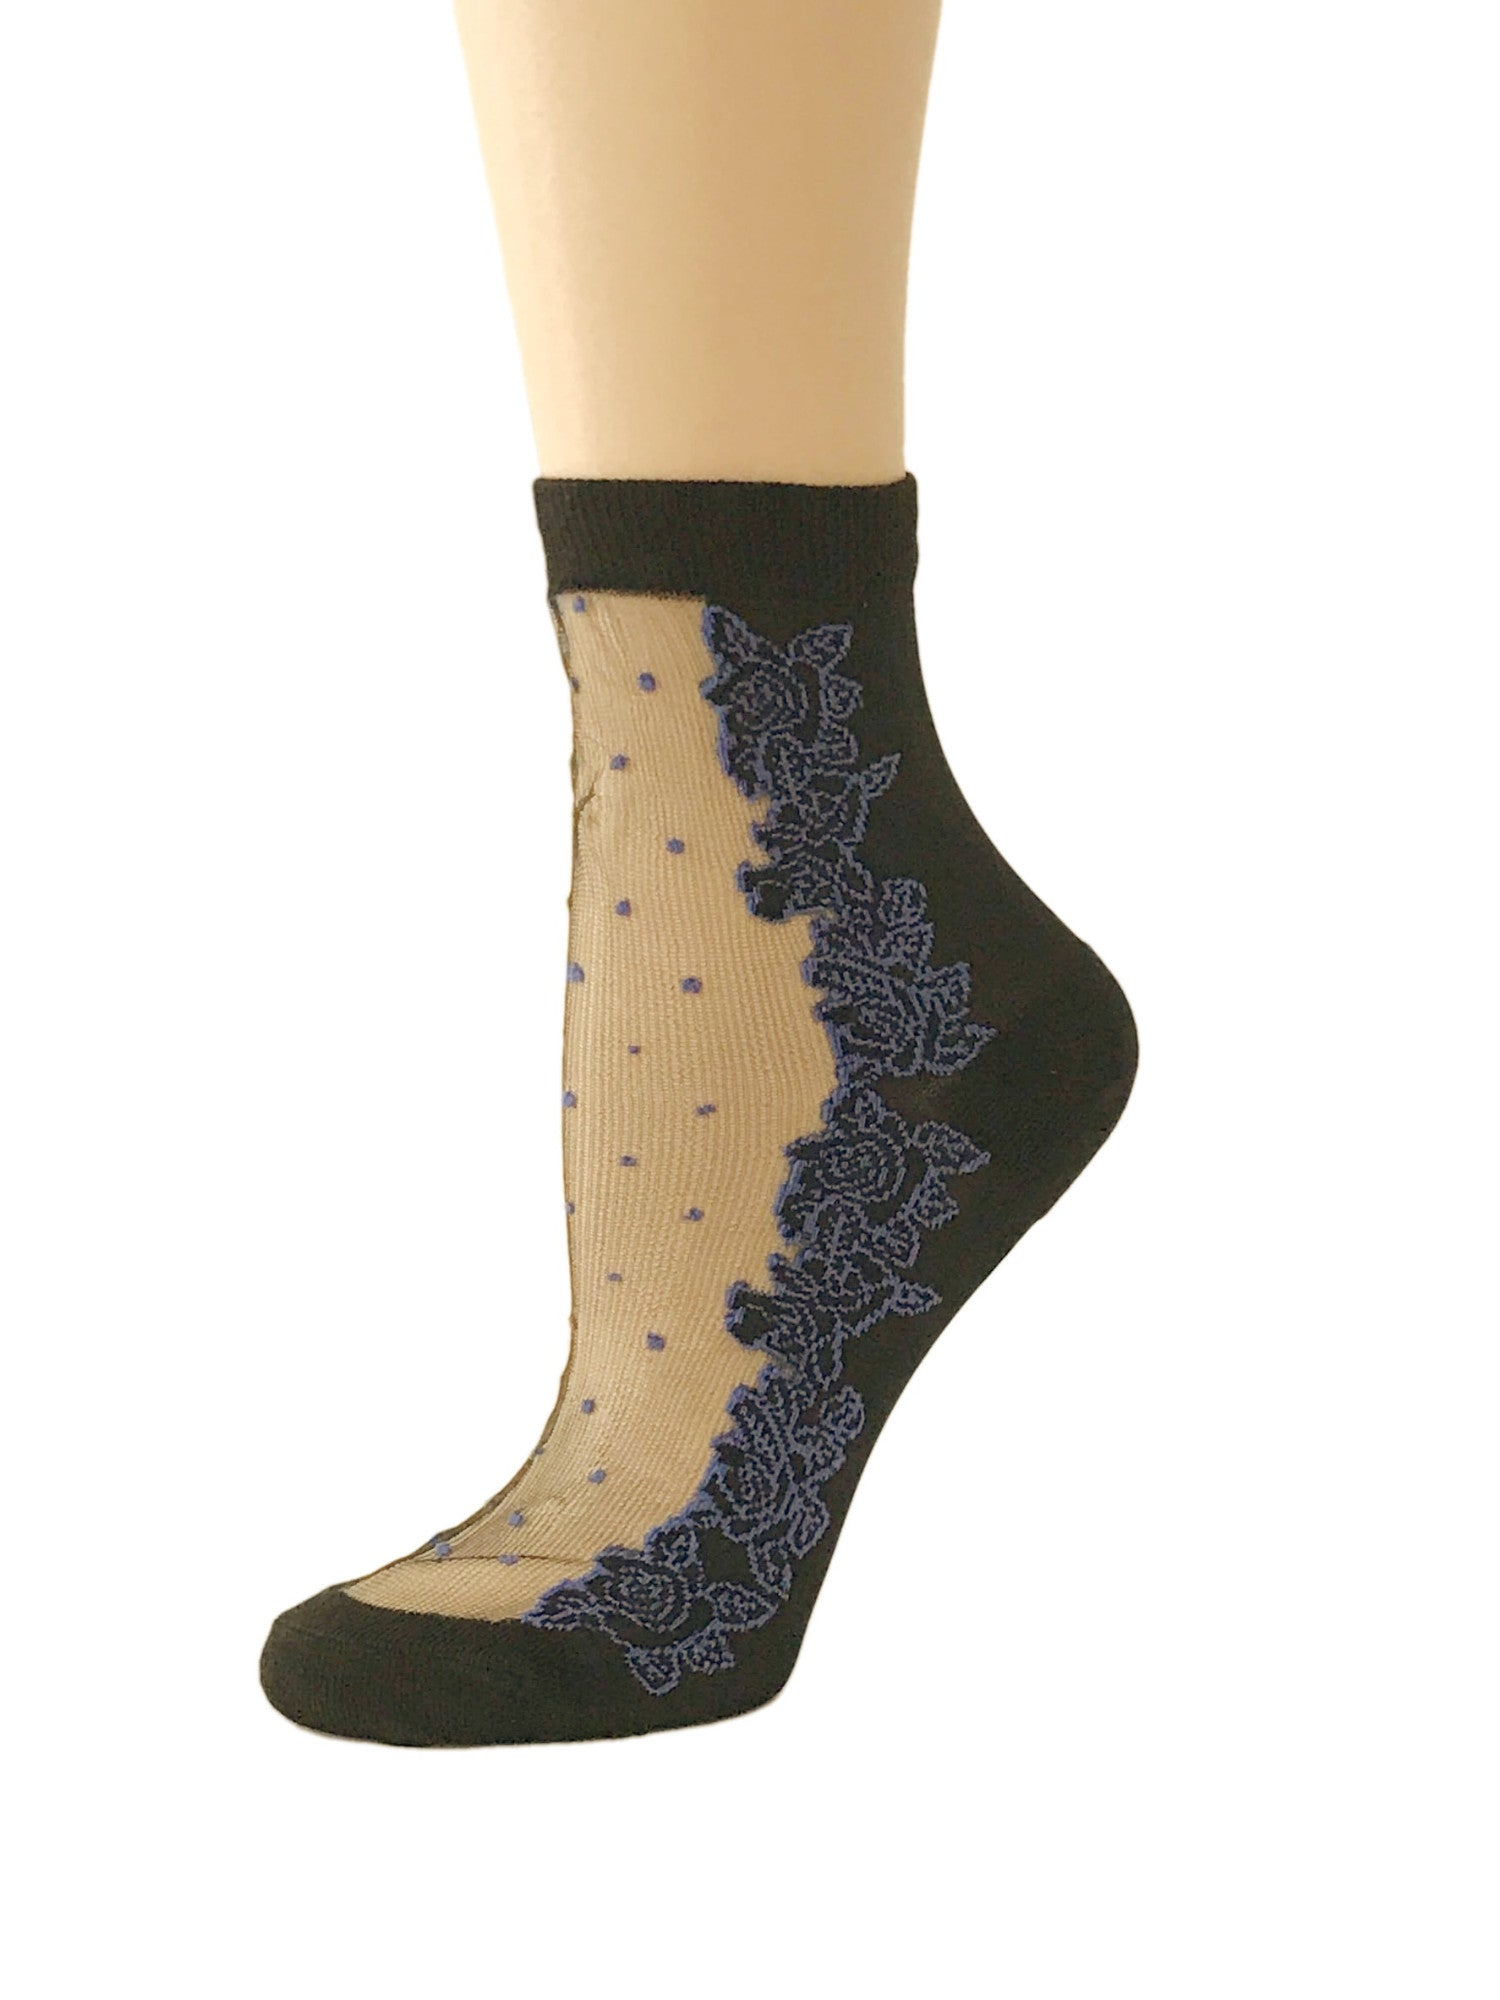 Dotted Purple Roses Sheer Socks - Global Trendz Fashion®